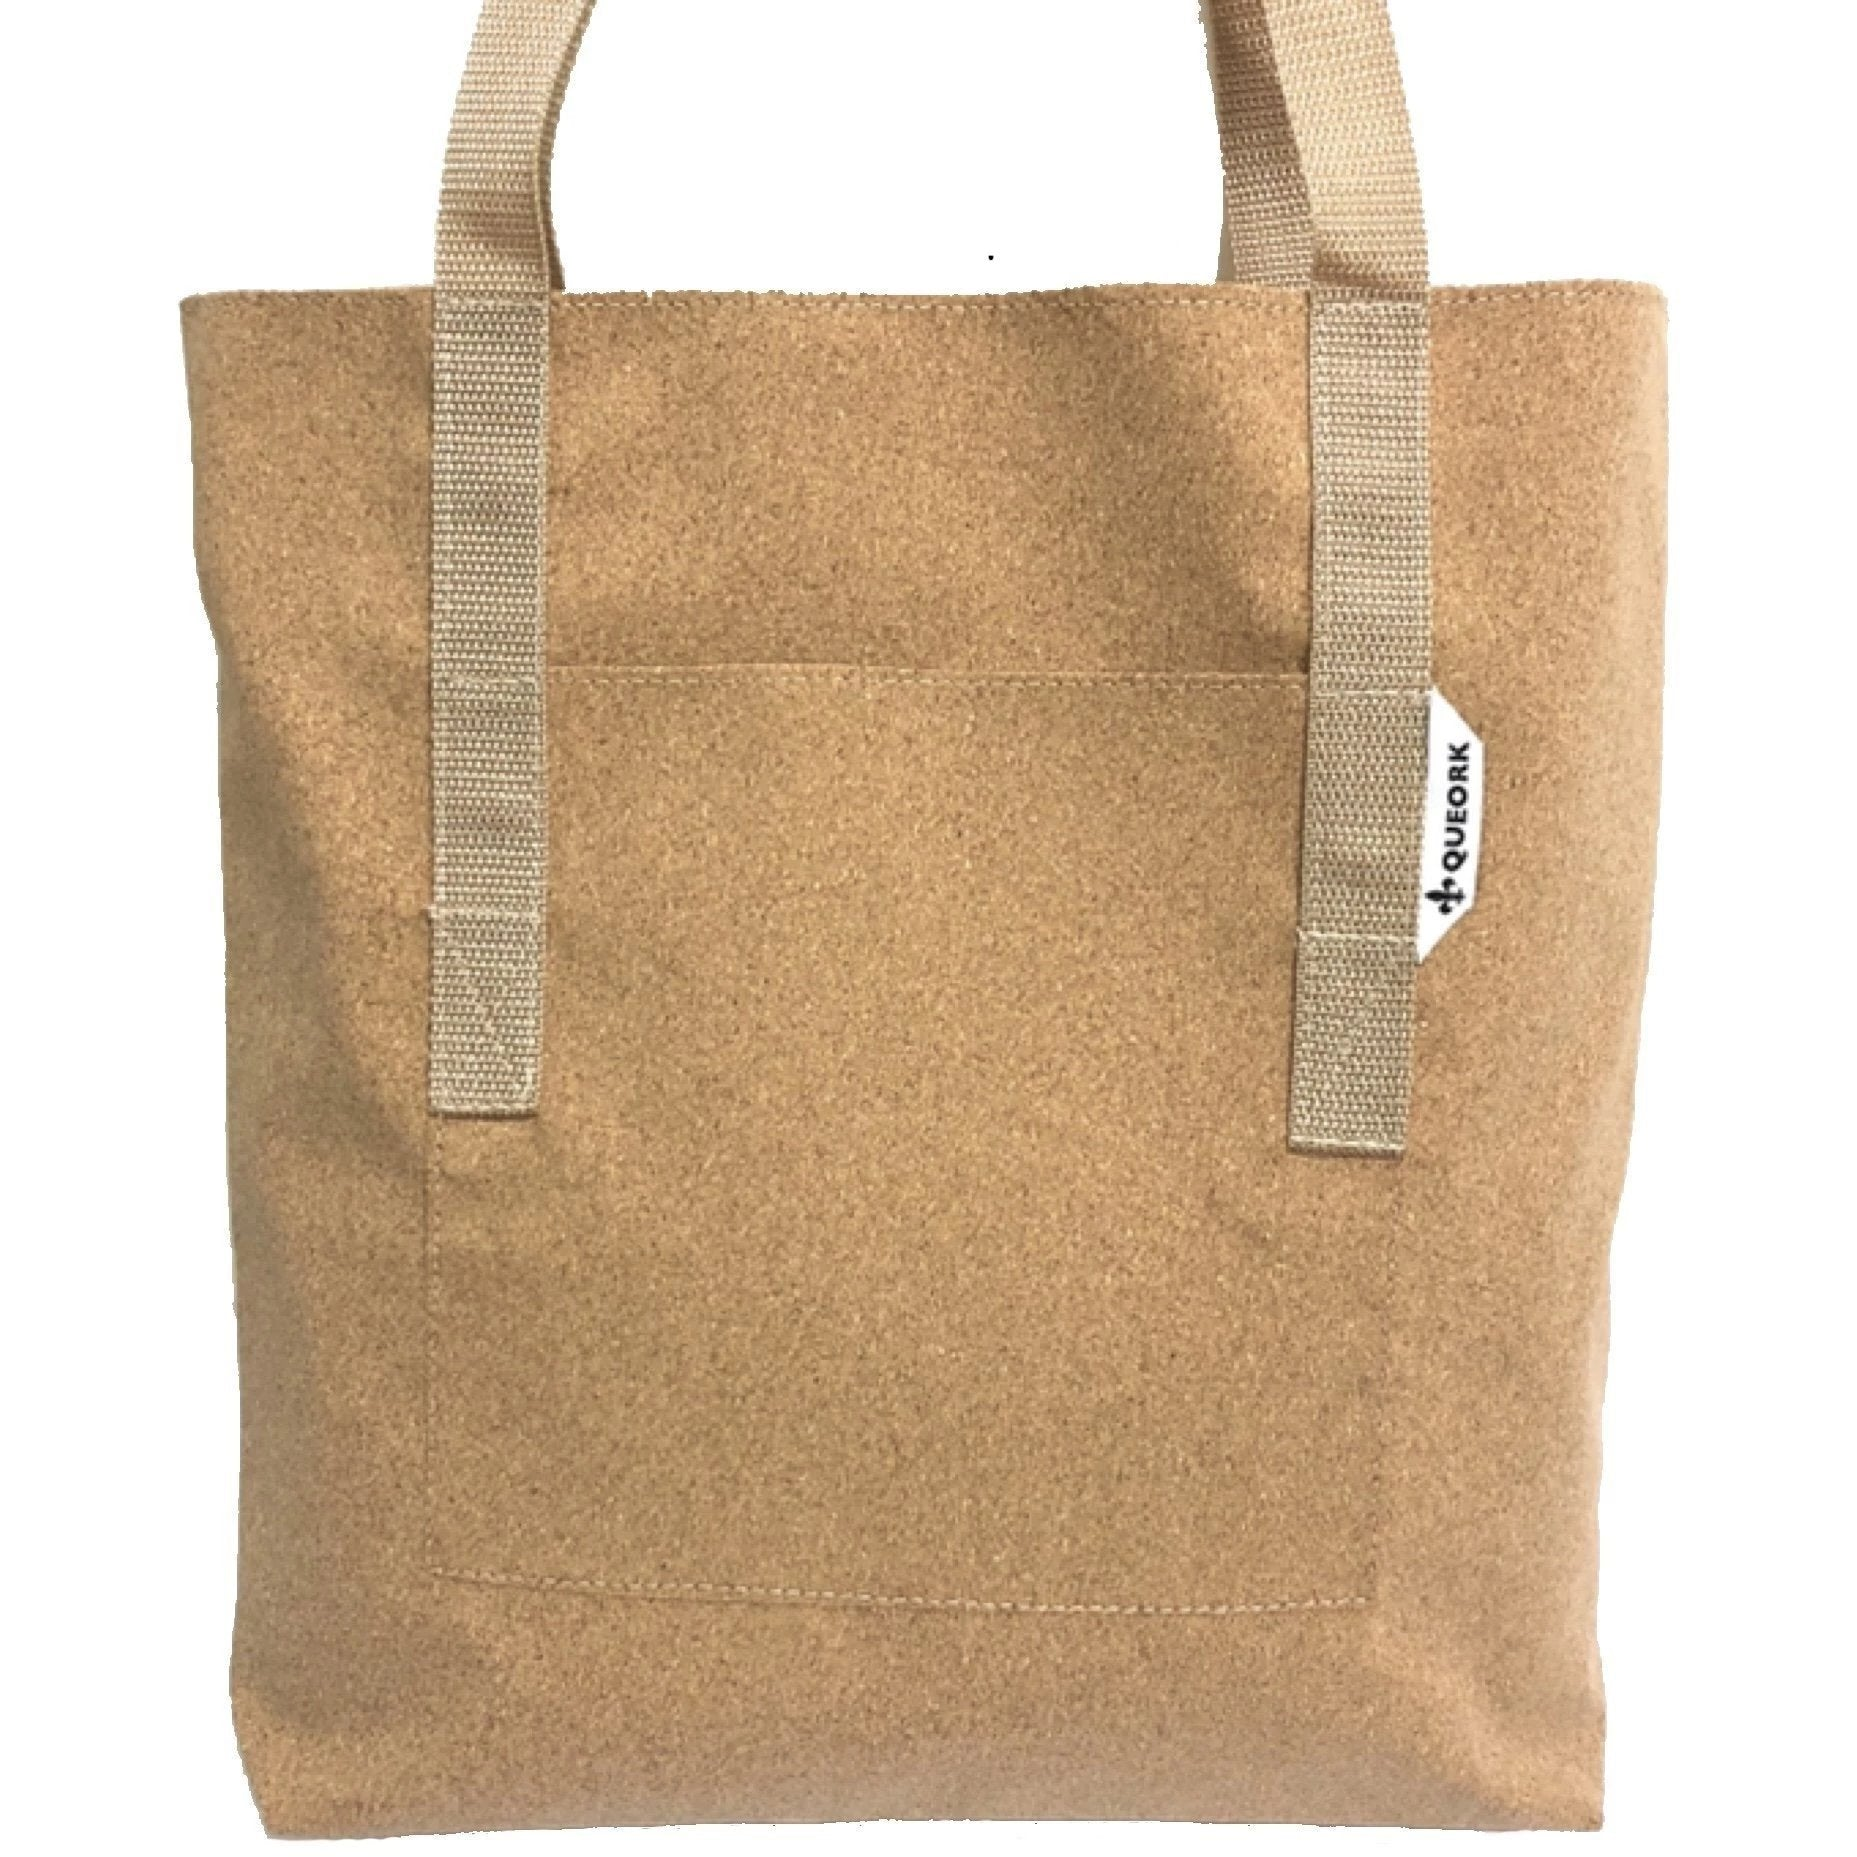 Cork Shopper Tote